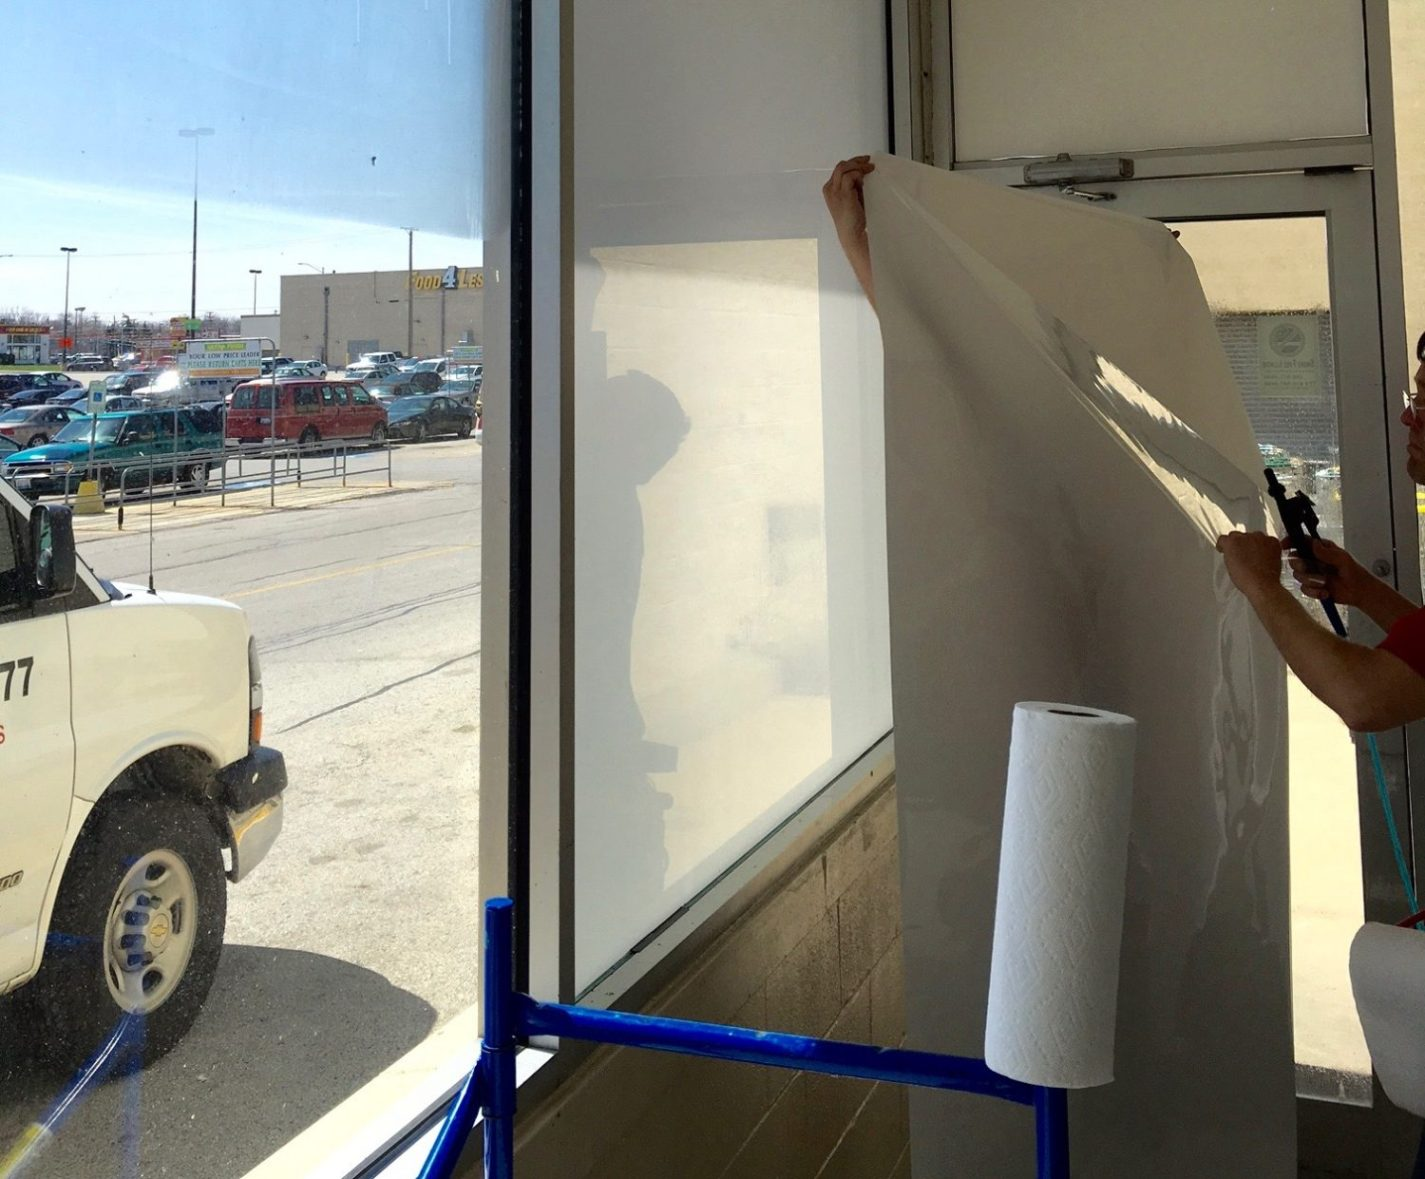 Client Wants Decorative Glass Films for Privacy at Business